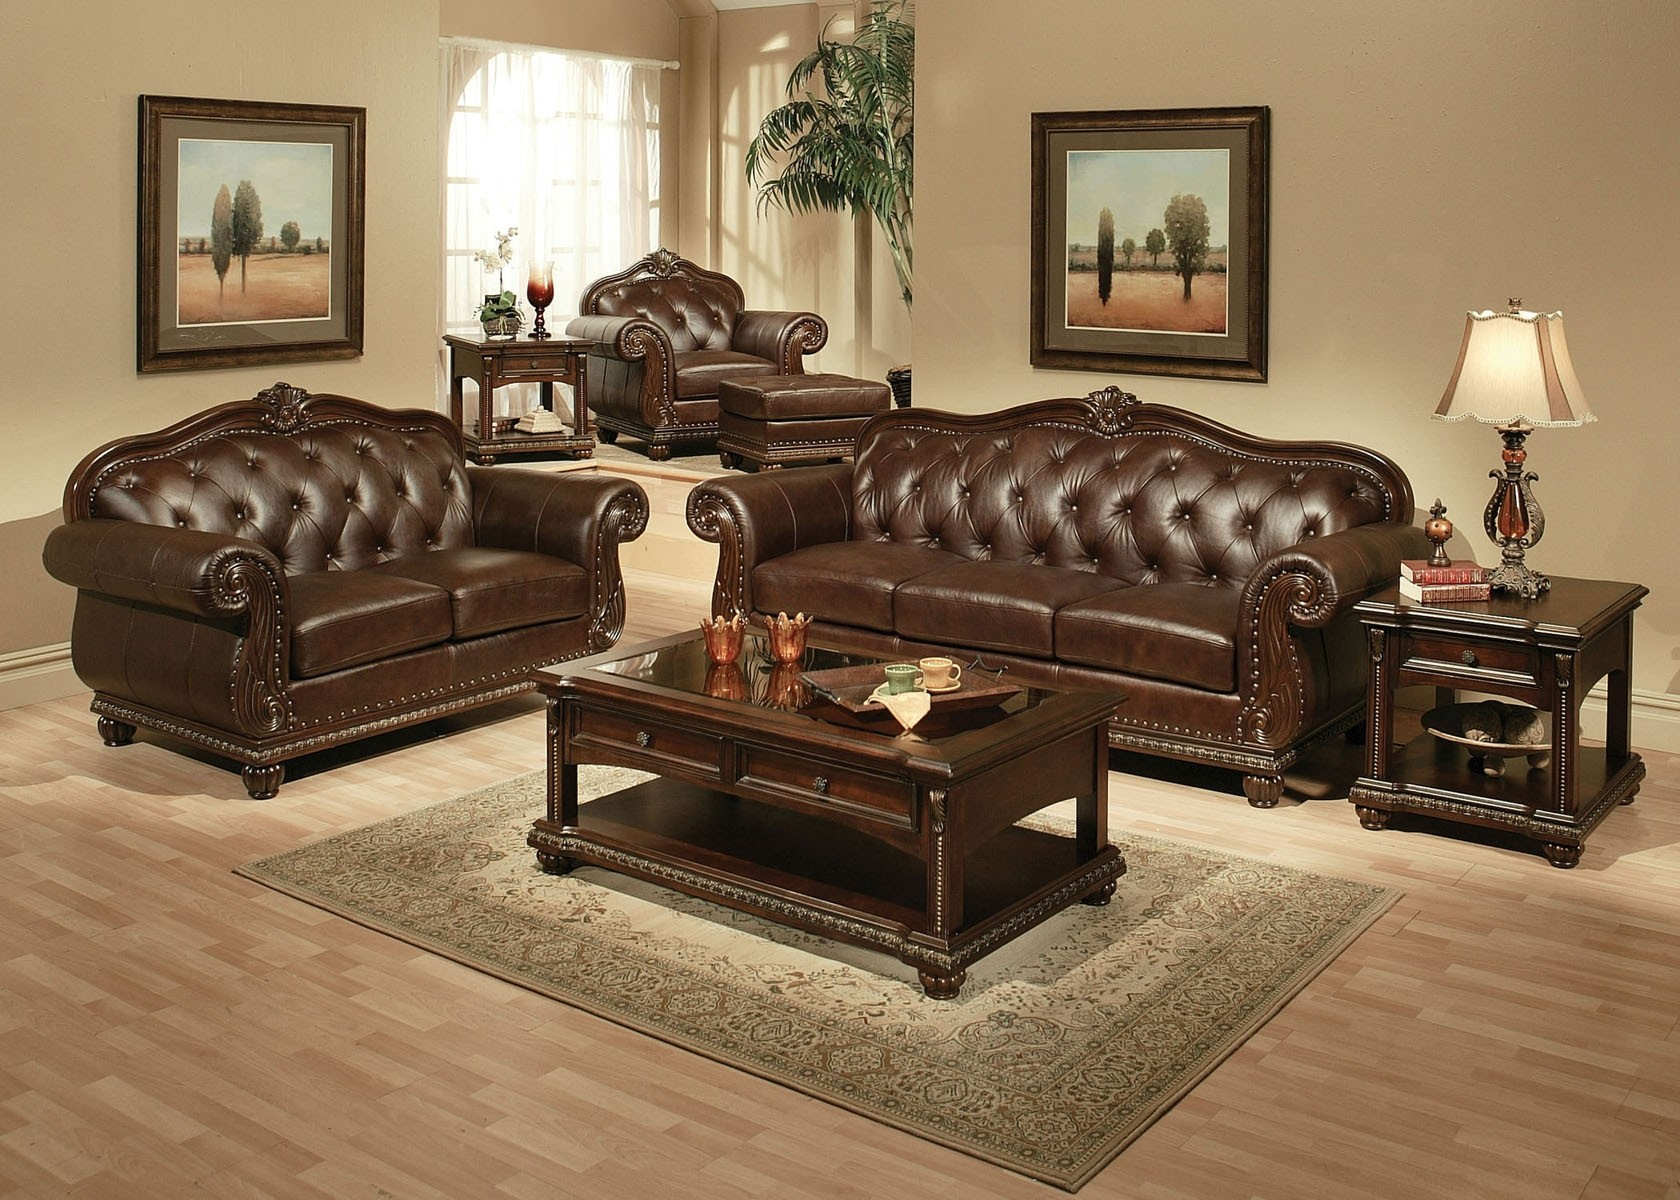 Adequately selecting leather living room furniture sets